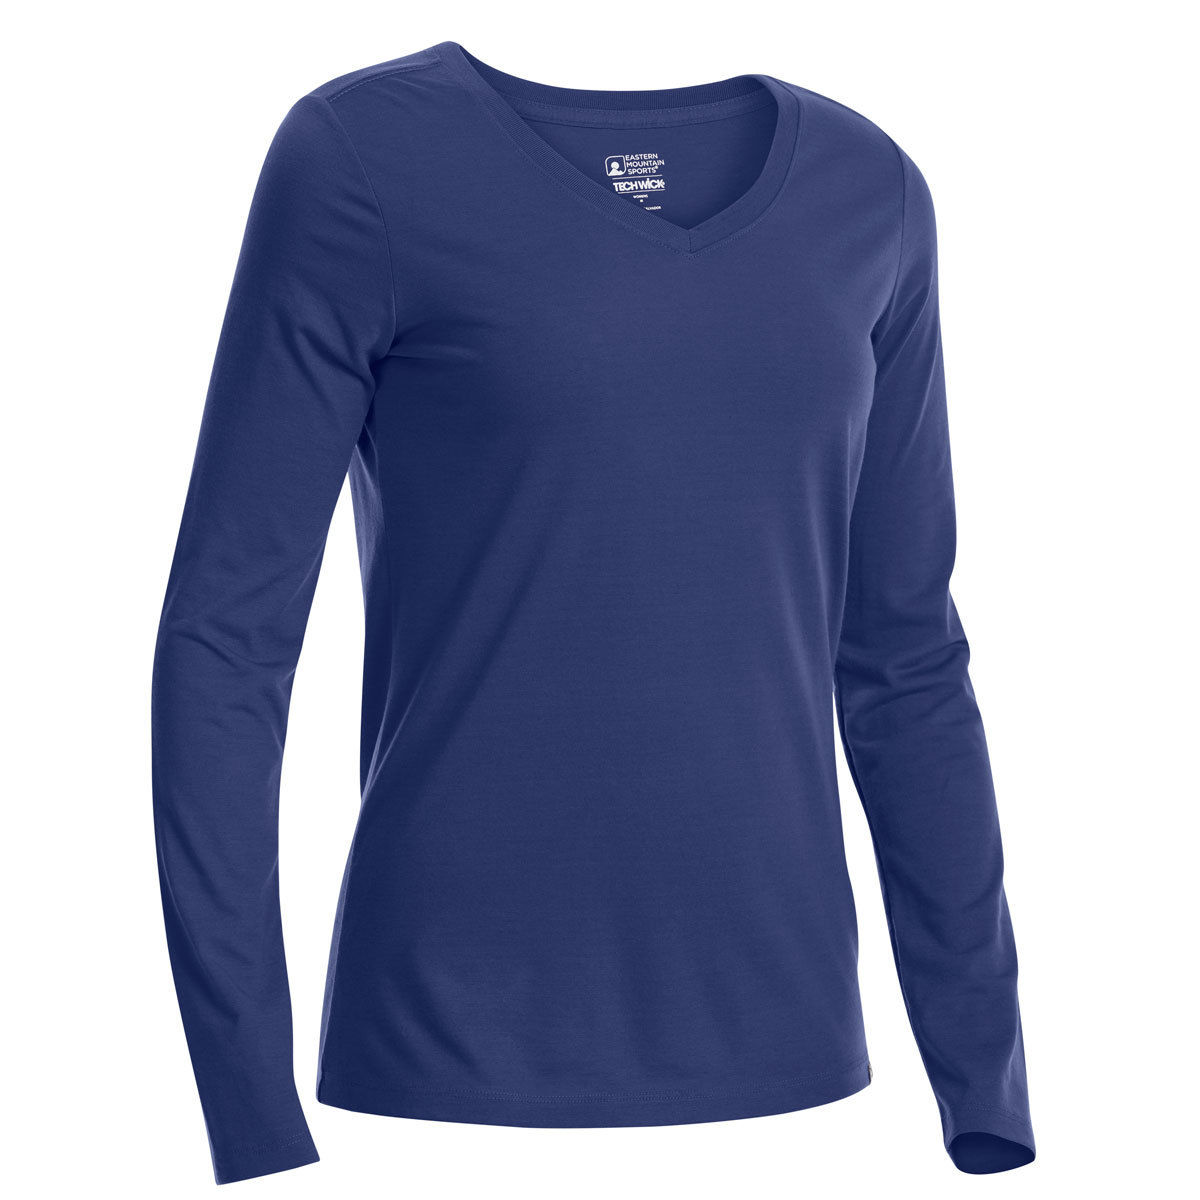 Ems Women's Techwick Vital V-Neck Long-Sleeve Tee - Blue, XS